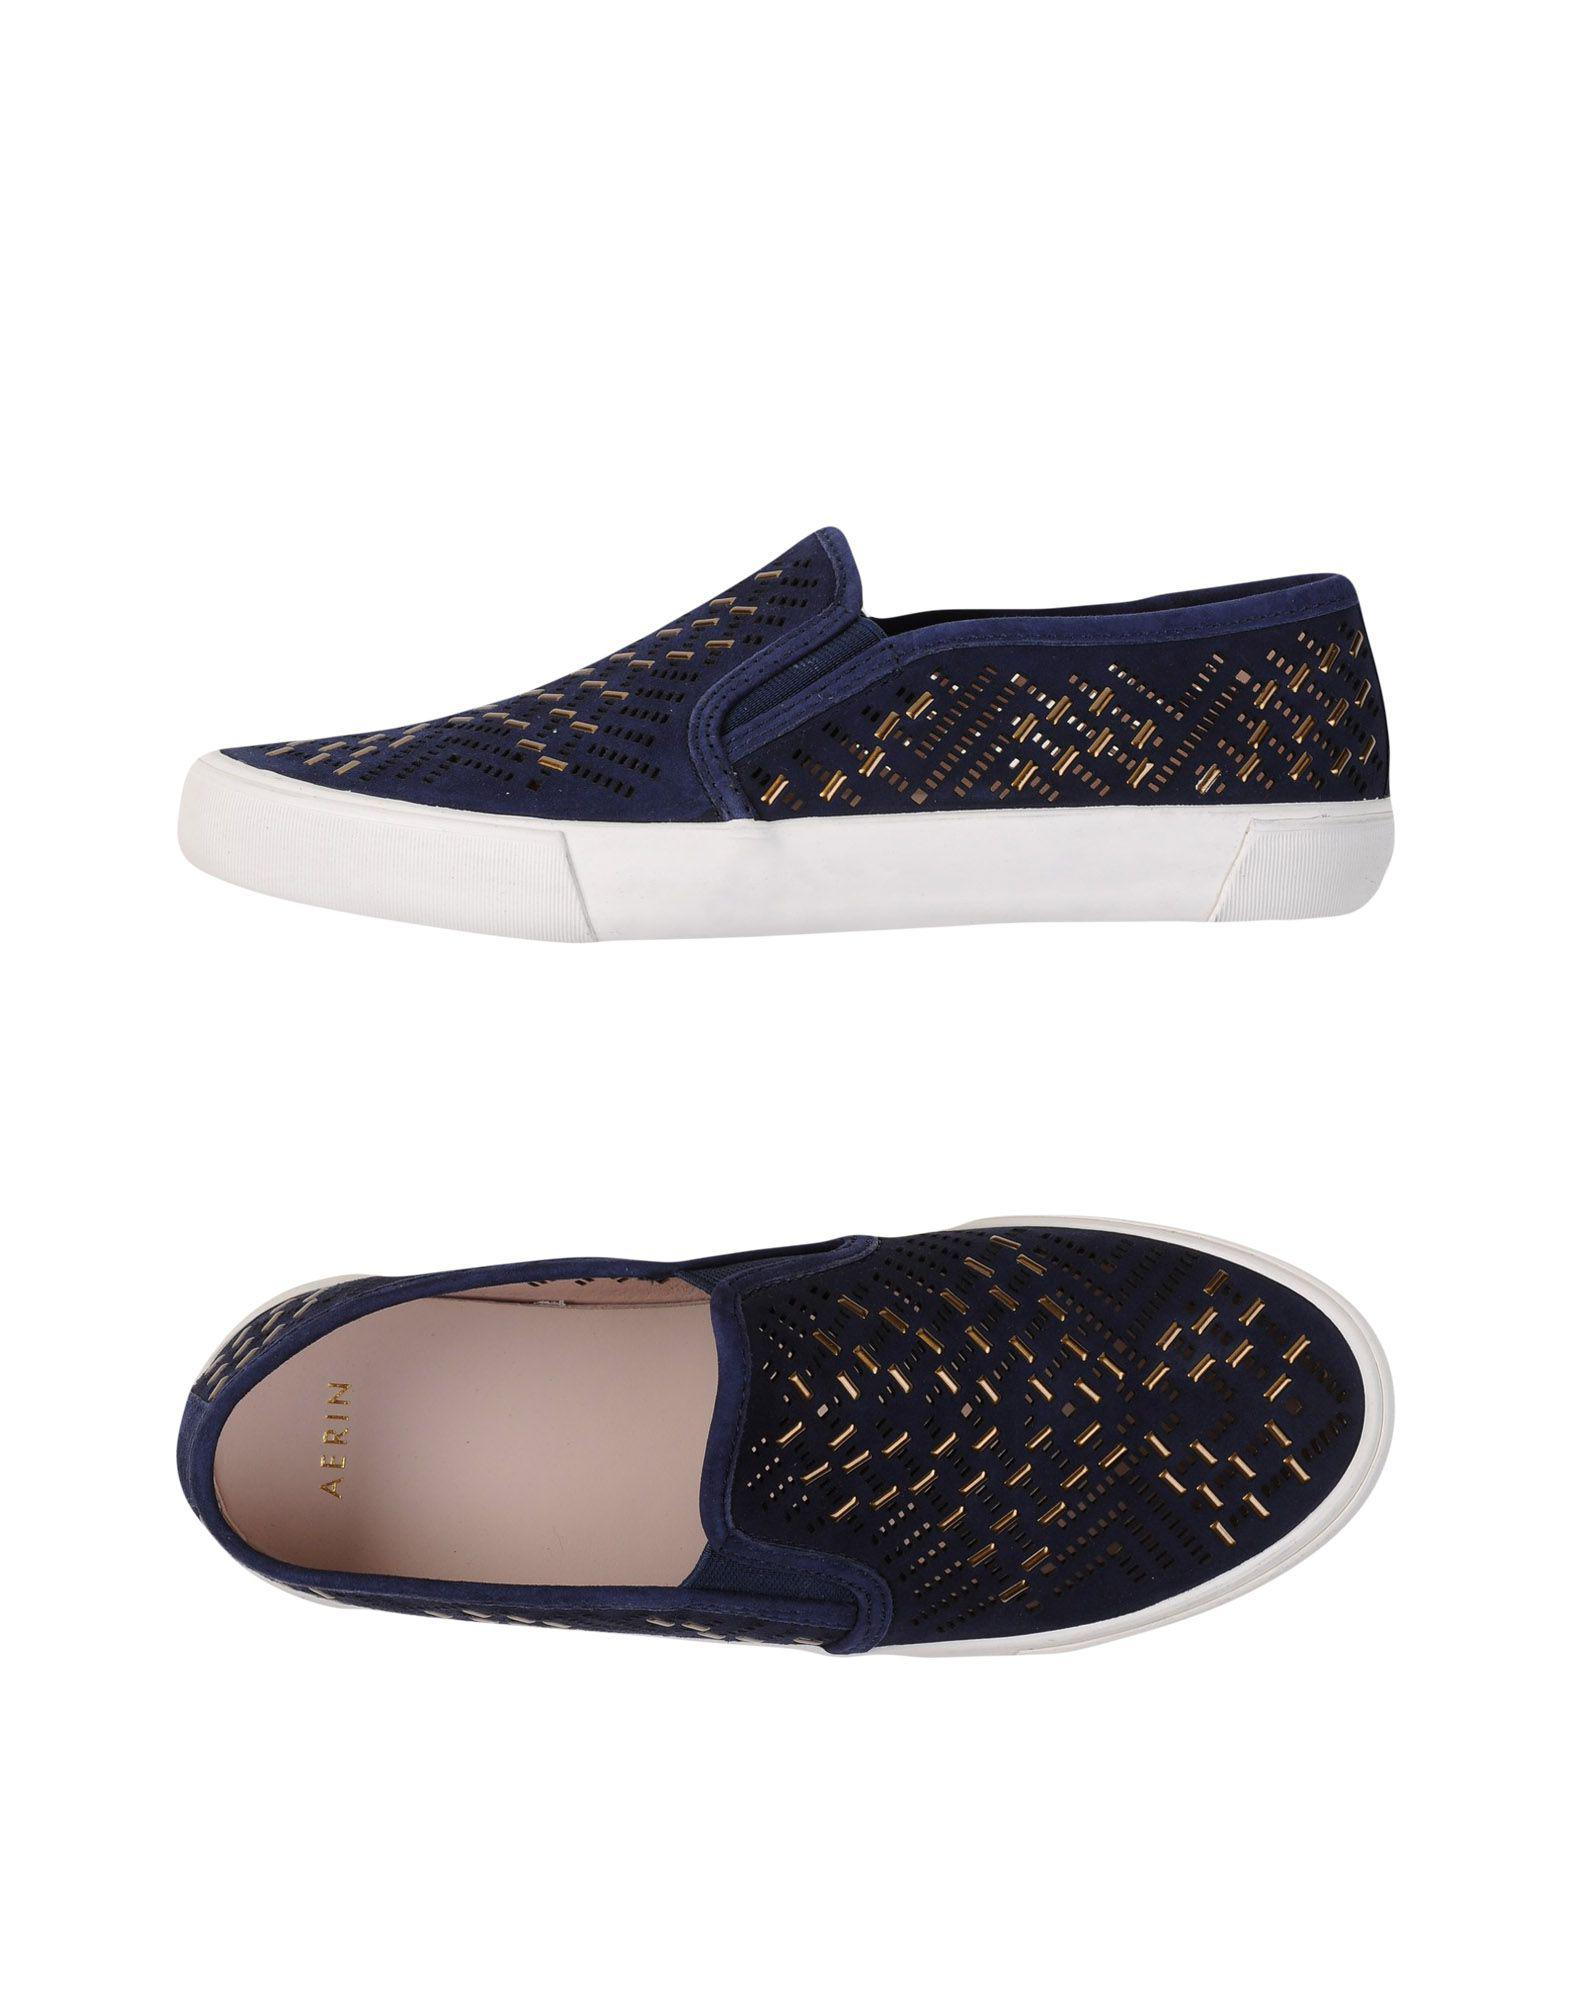 Discount Really FOOTWEAR - Low-tops & sneakers Aerin Cheap Sale Shop For Cheap Geniue Stockist Sale Excellent Great Deals Sale Online 1qOYI6oxX